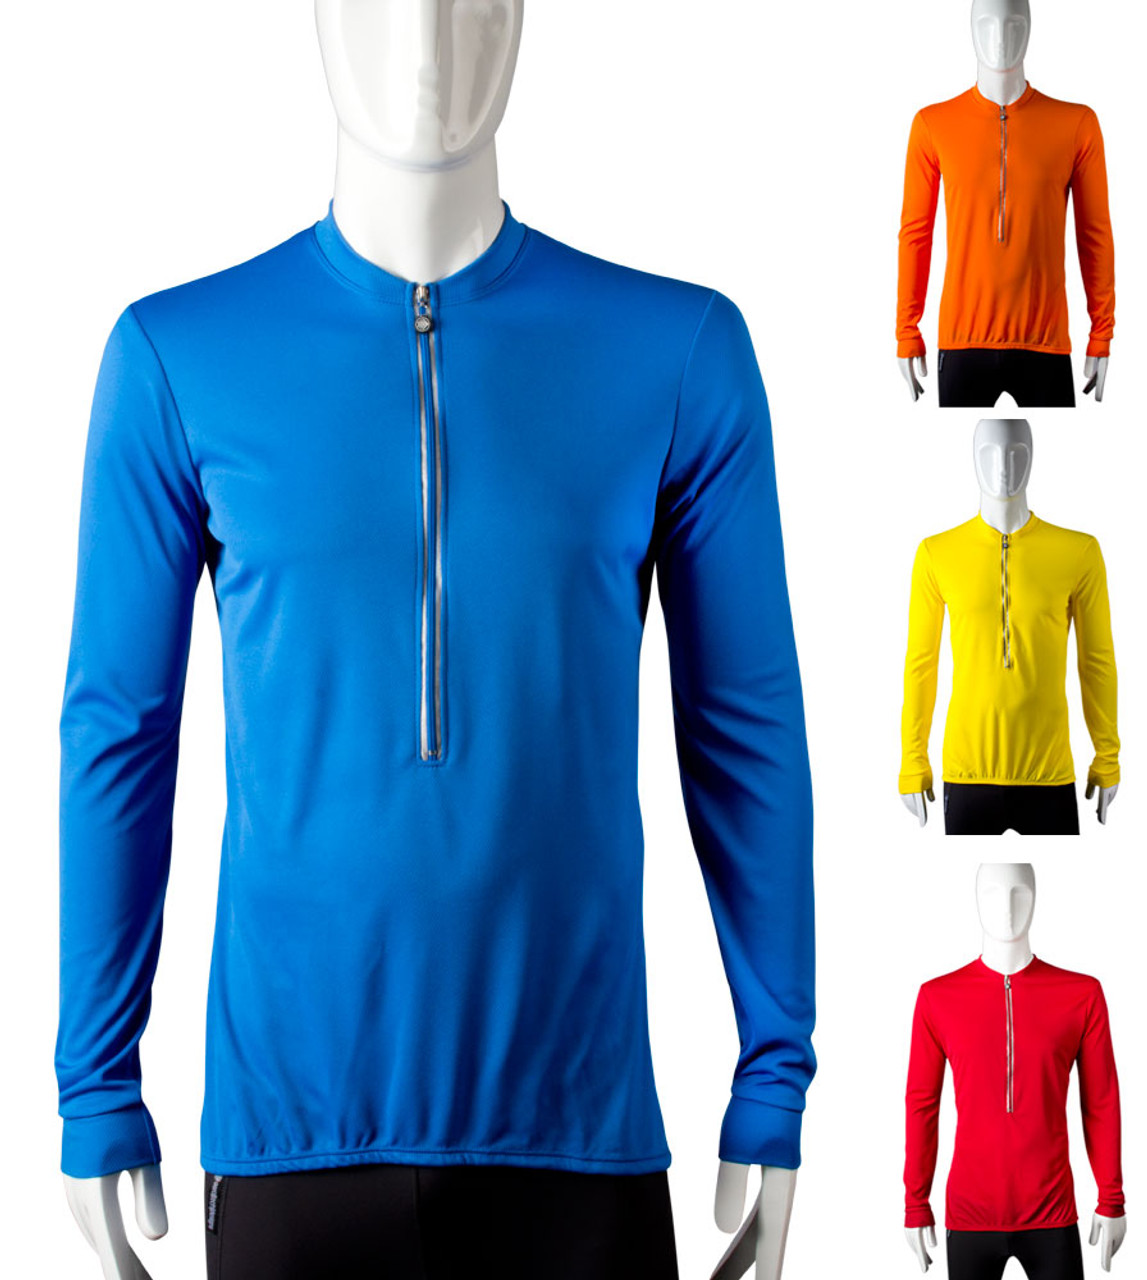 Men Cycling Jersey Half Sleeve Bike//Bicycle top jersey Short Sleeves shirts Gift